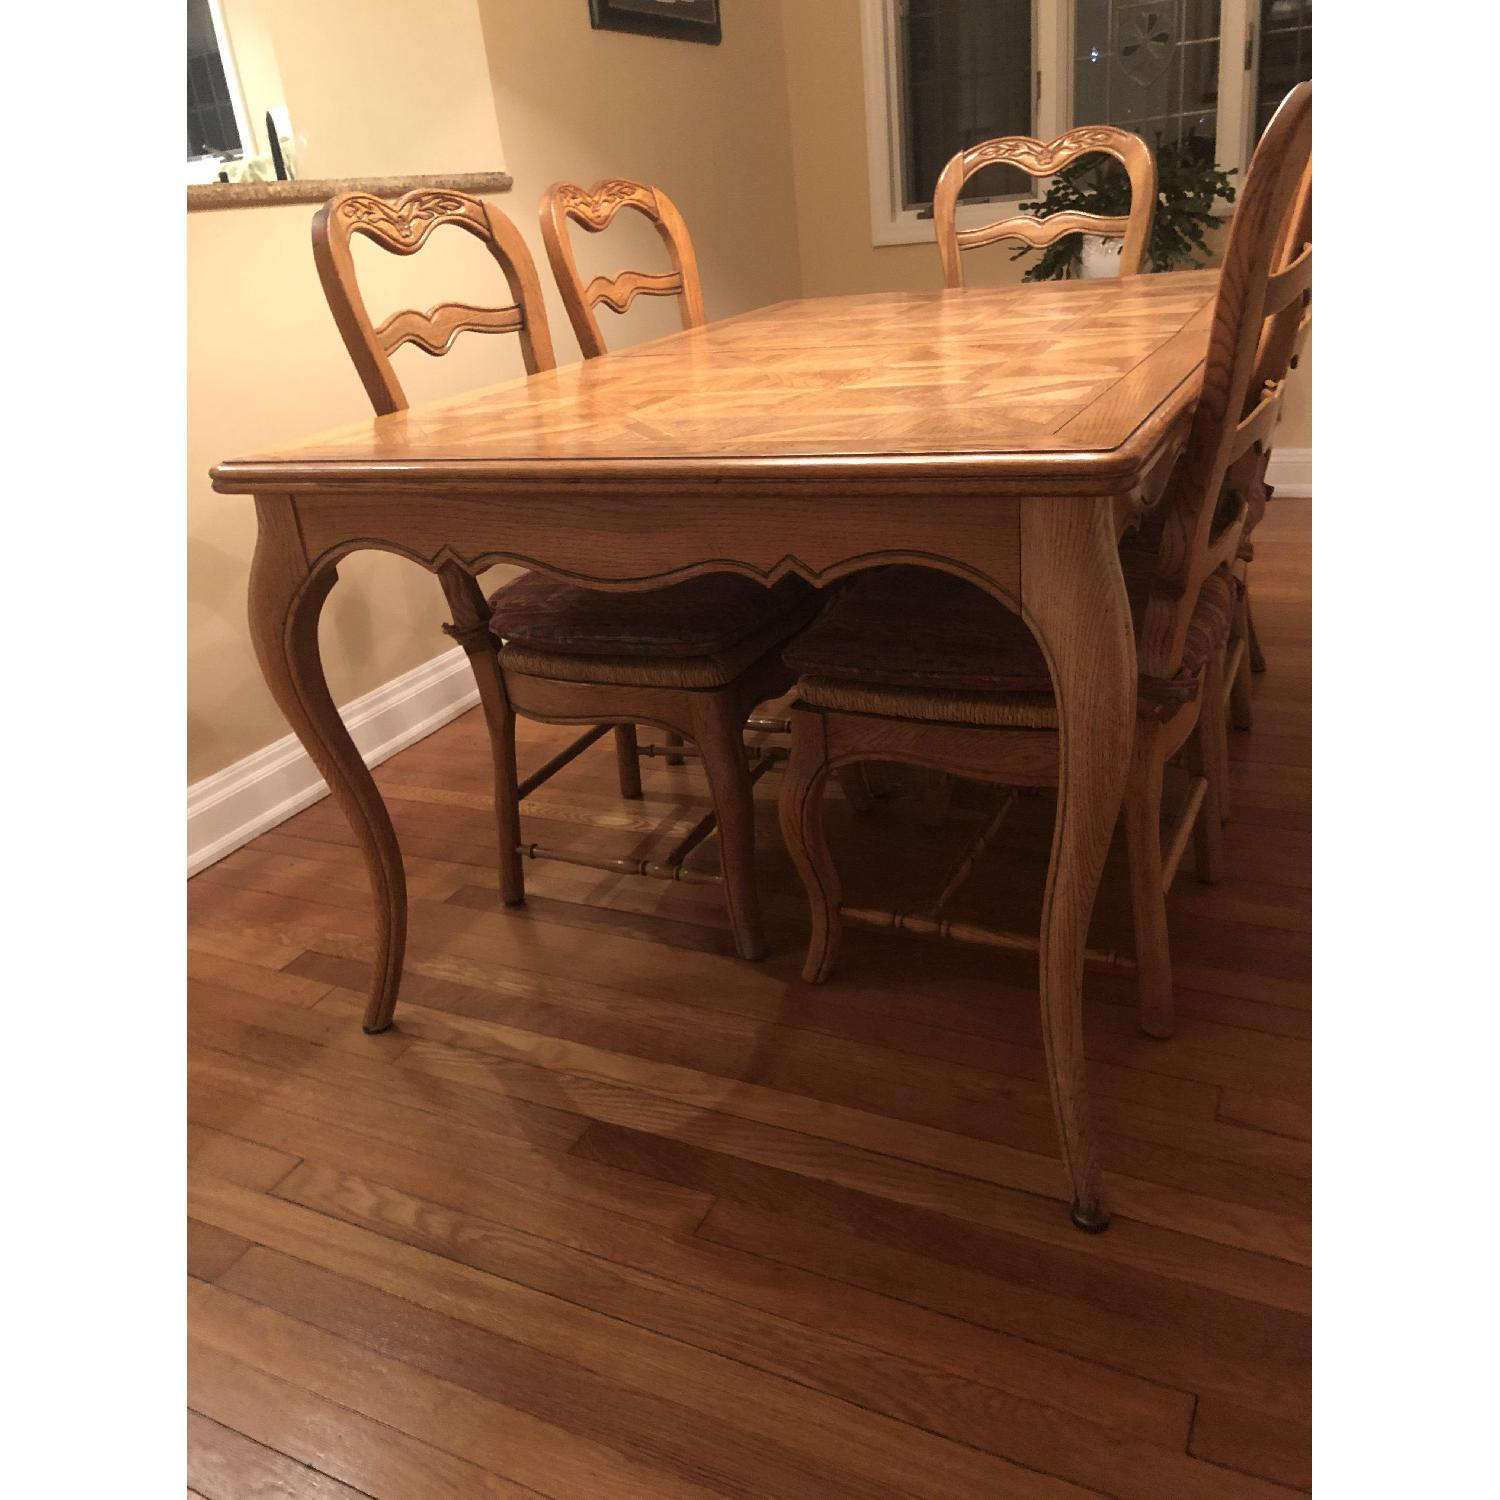 Provence Expandable Dining Table w/ 8 Chairs - image-1